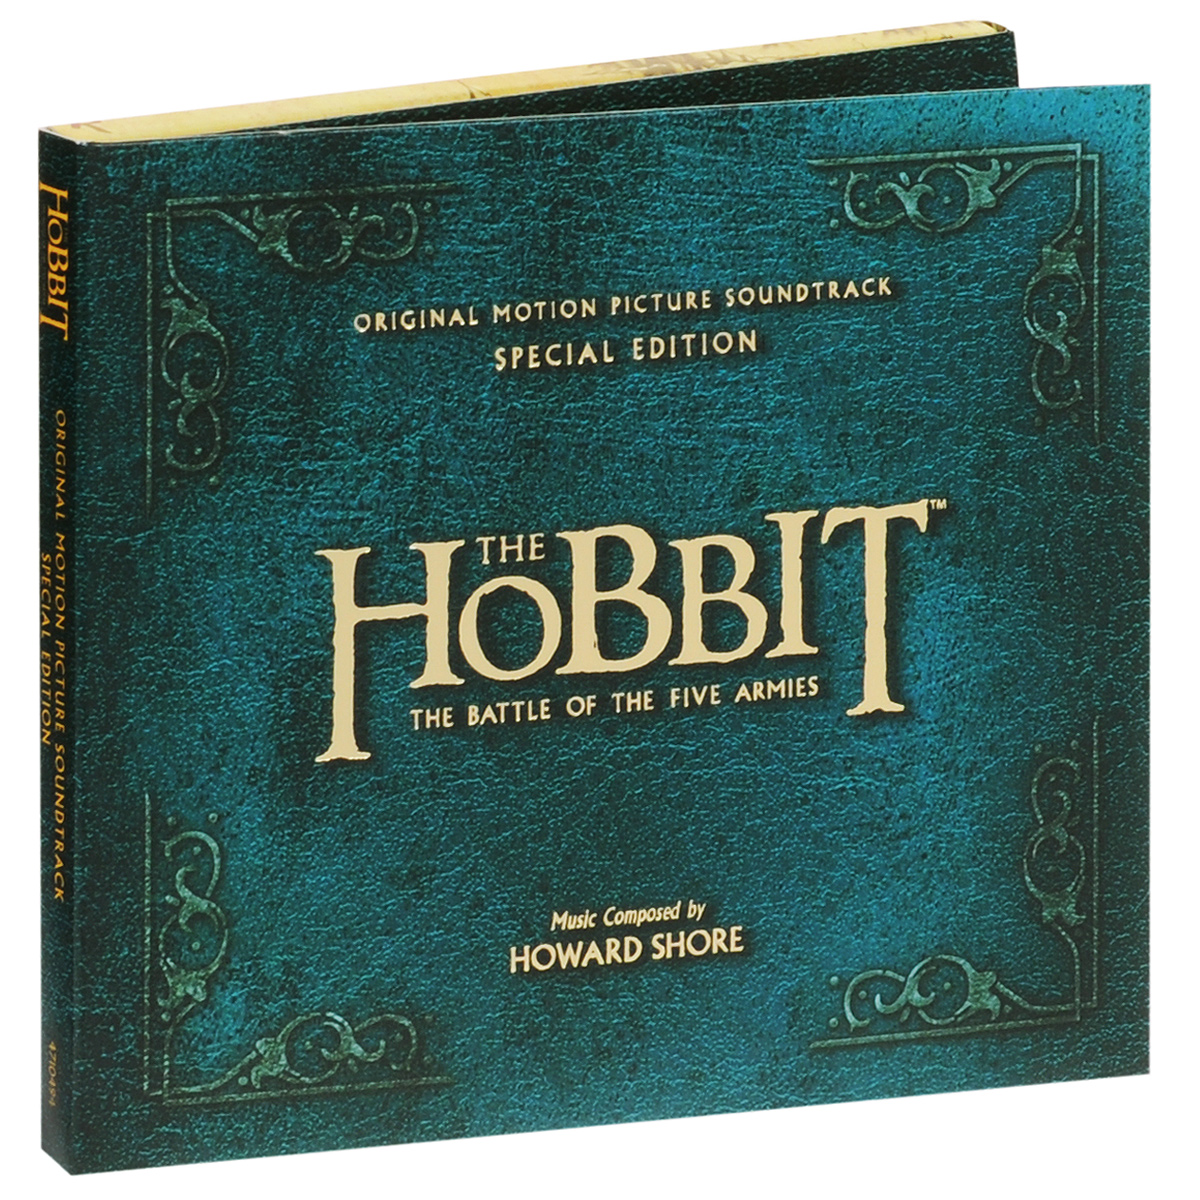 The Hobbit. The Battle Of The Five Armies. Original Montion Picture Soundtrack. Special Edition (2 CD)